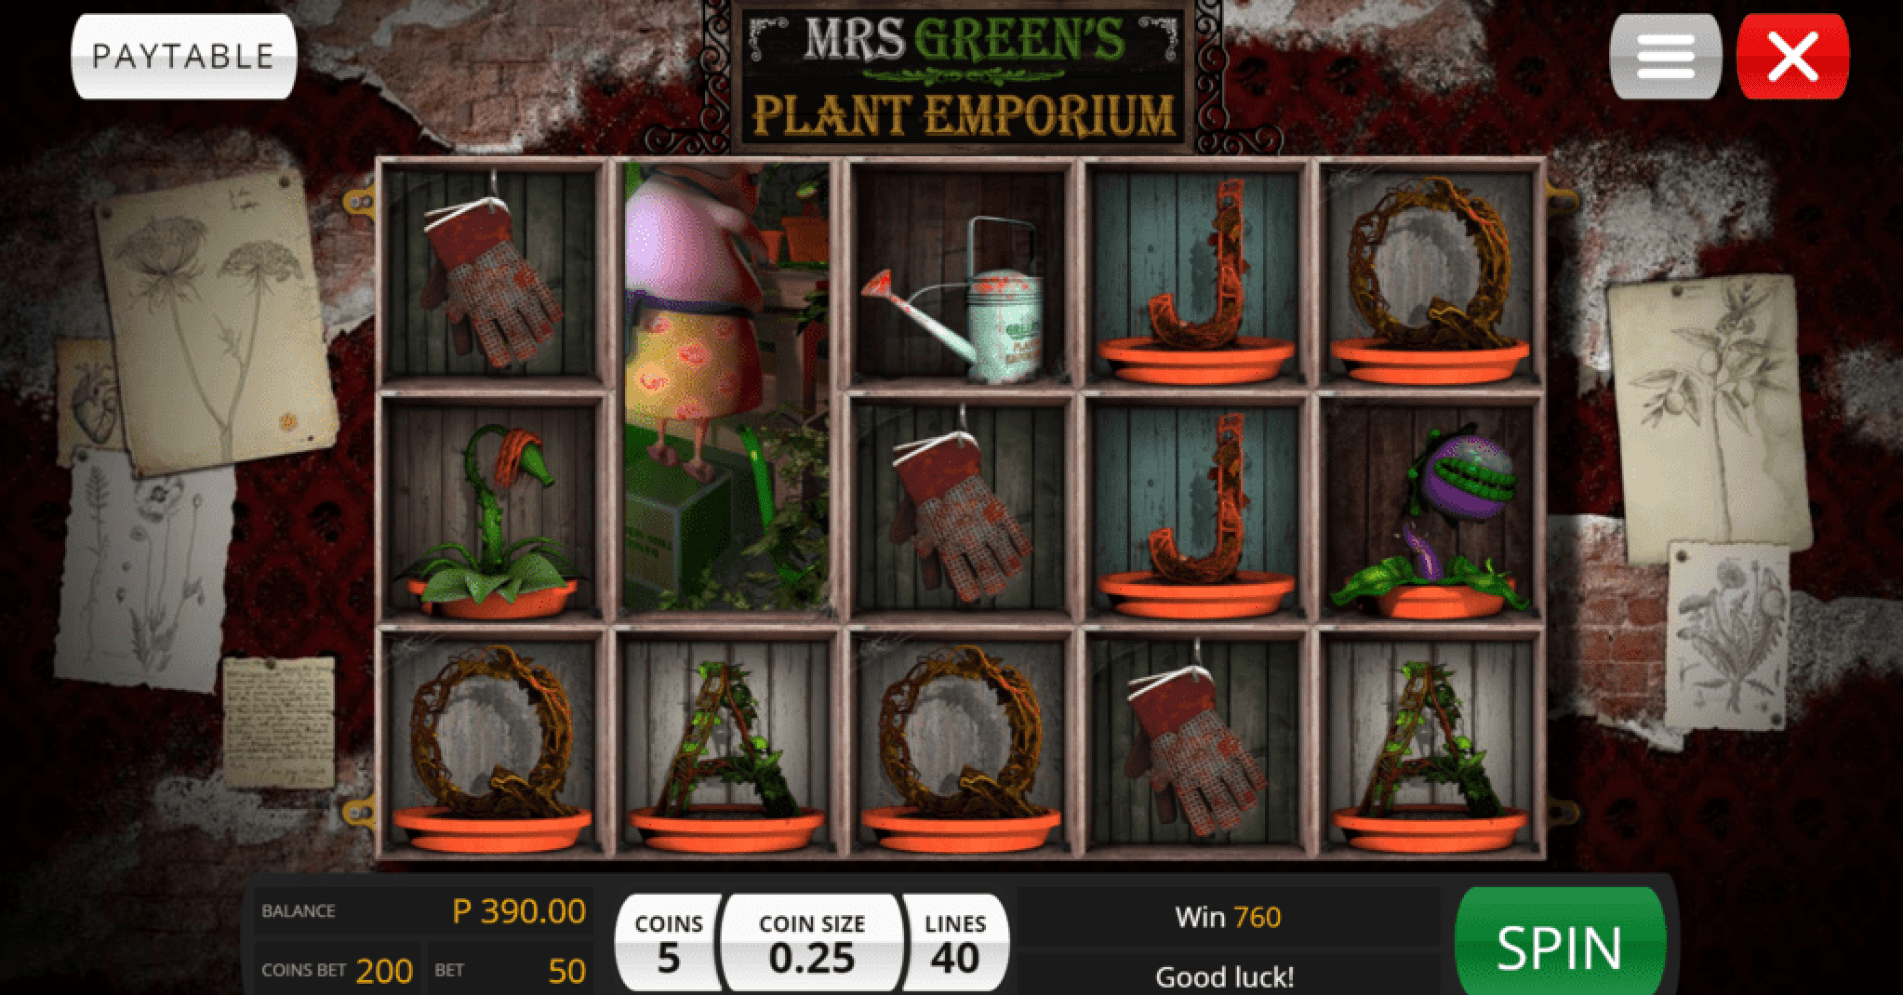 Jackpot Wheel Saucify Mrs Green Plant Emporium 40 FREE Spins plus 300% up to $600